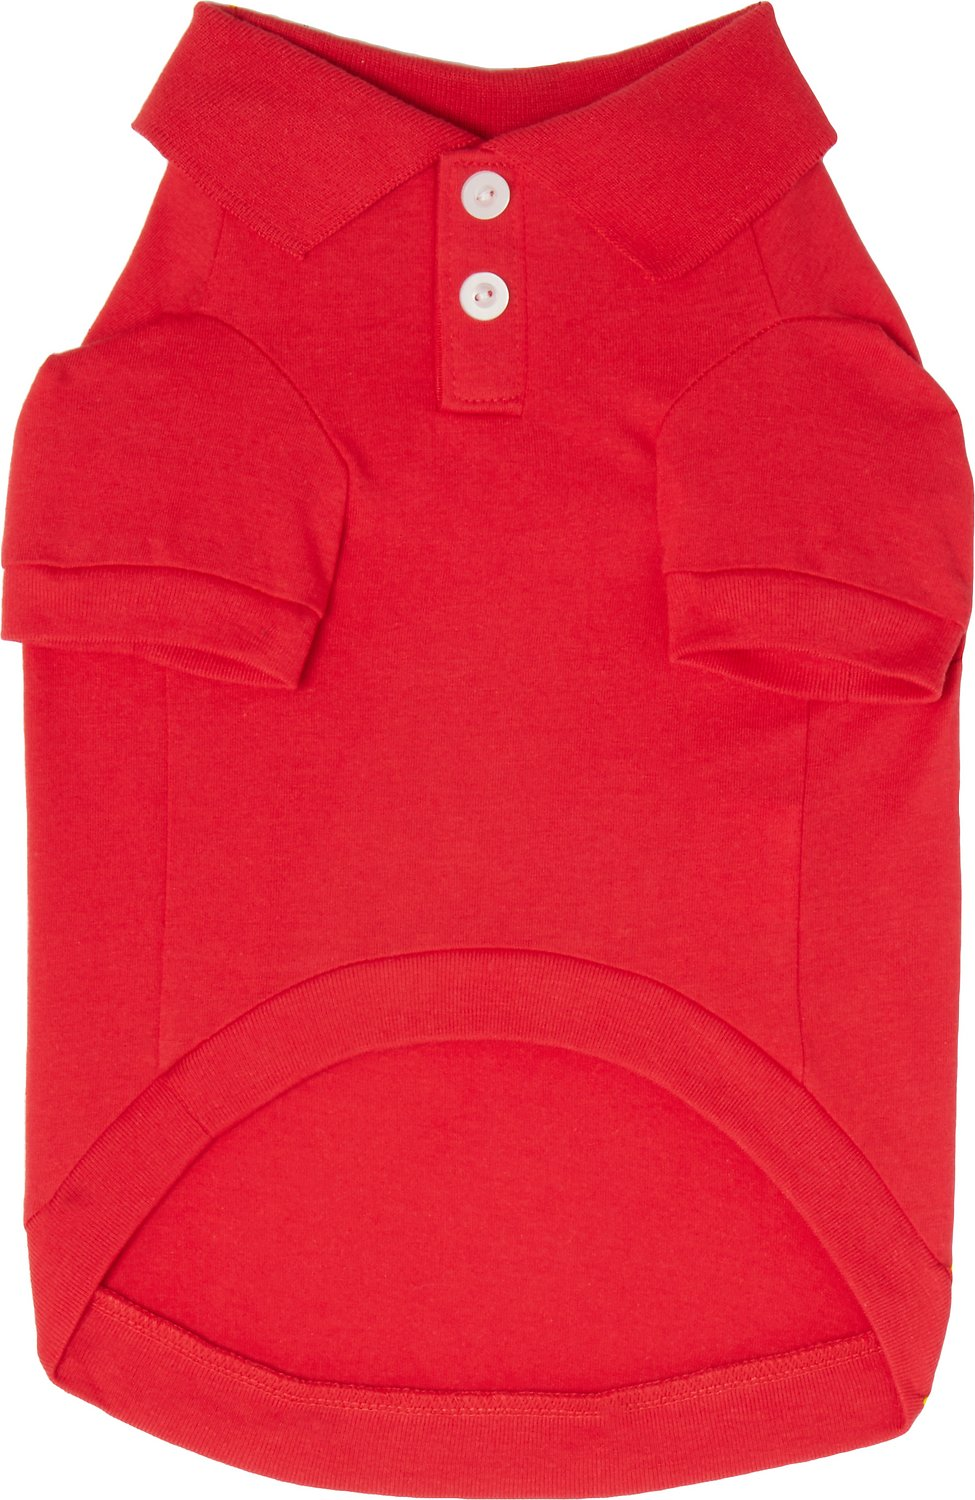 Frisco Classic Dog Polo Shirt Red Medium Chewy